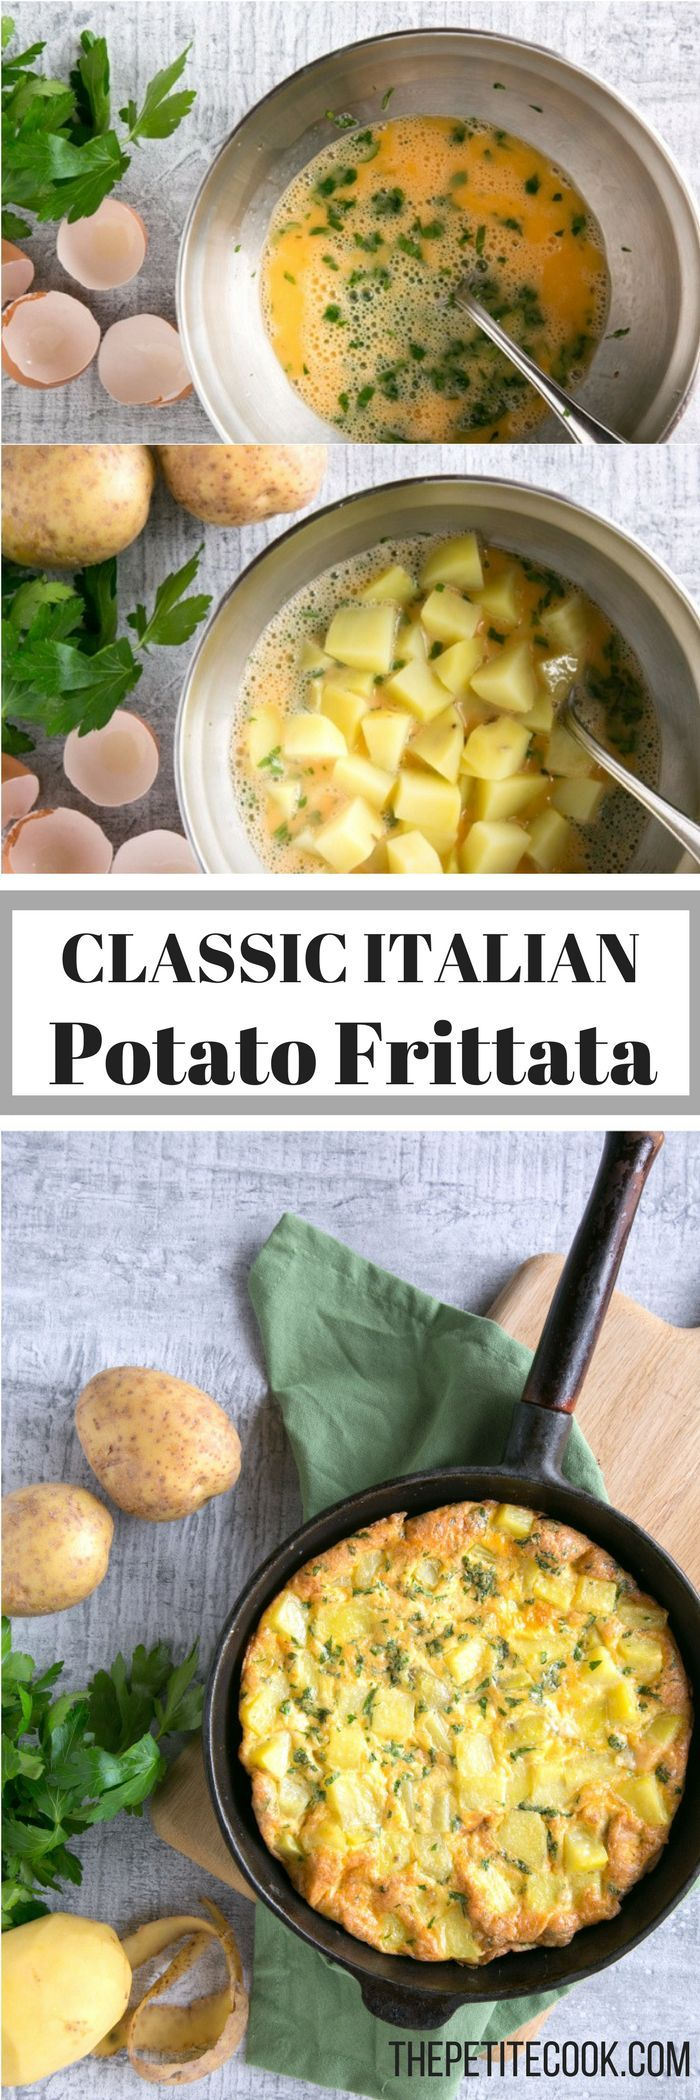 Classic Italian Potato Frittata is the easiest meal you can make: eggs, potatoes and fresh herbs come together for a quick dinner the whole family will love! Plus it's awesomely #vegetarian and #glutenfree - Recipe by The Petite Cook